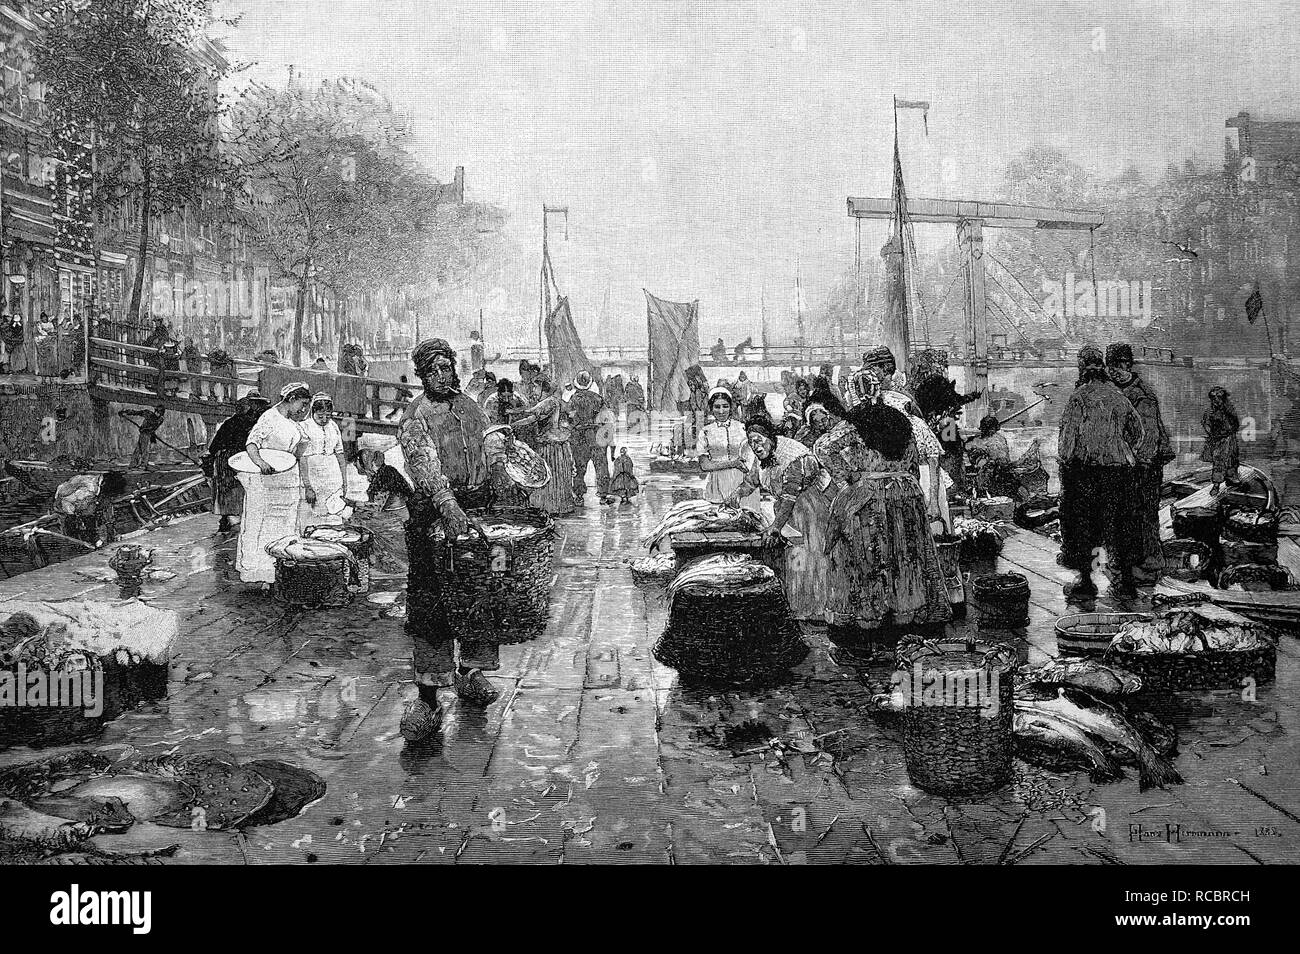 Fish market in Amsterdam, Netherlands, historical wood engraving, 1886 - Stock Image